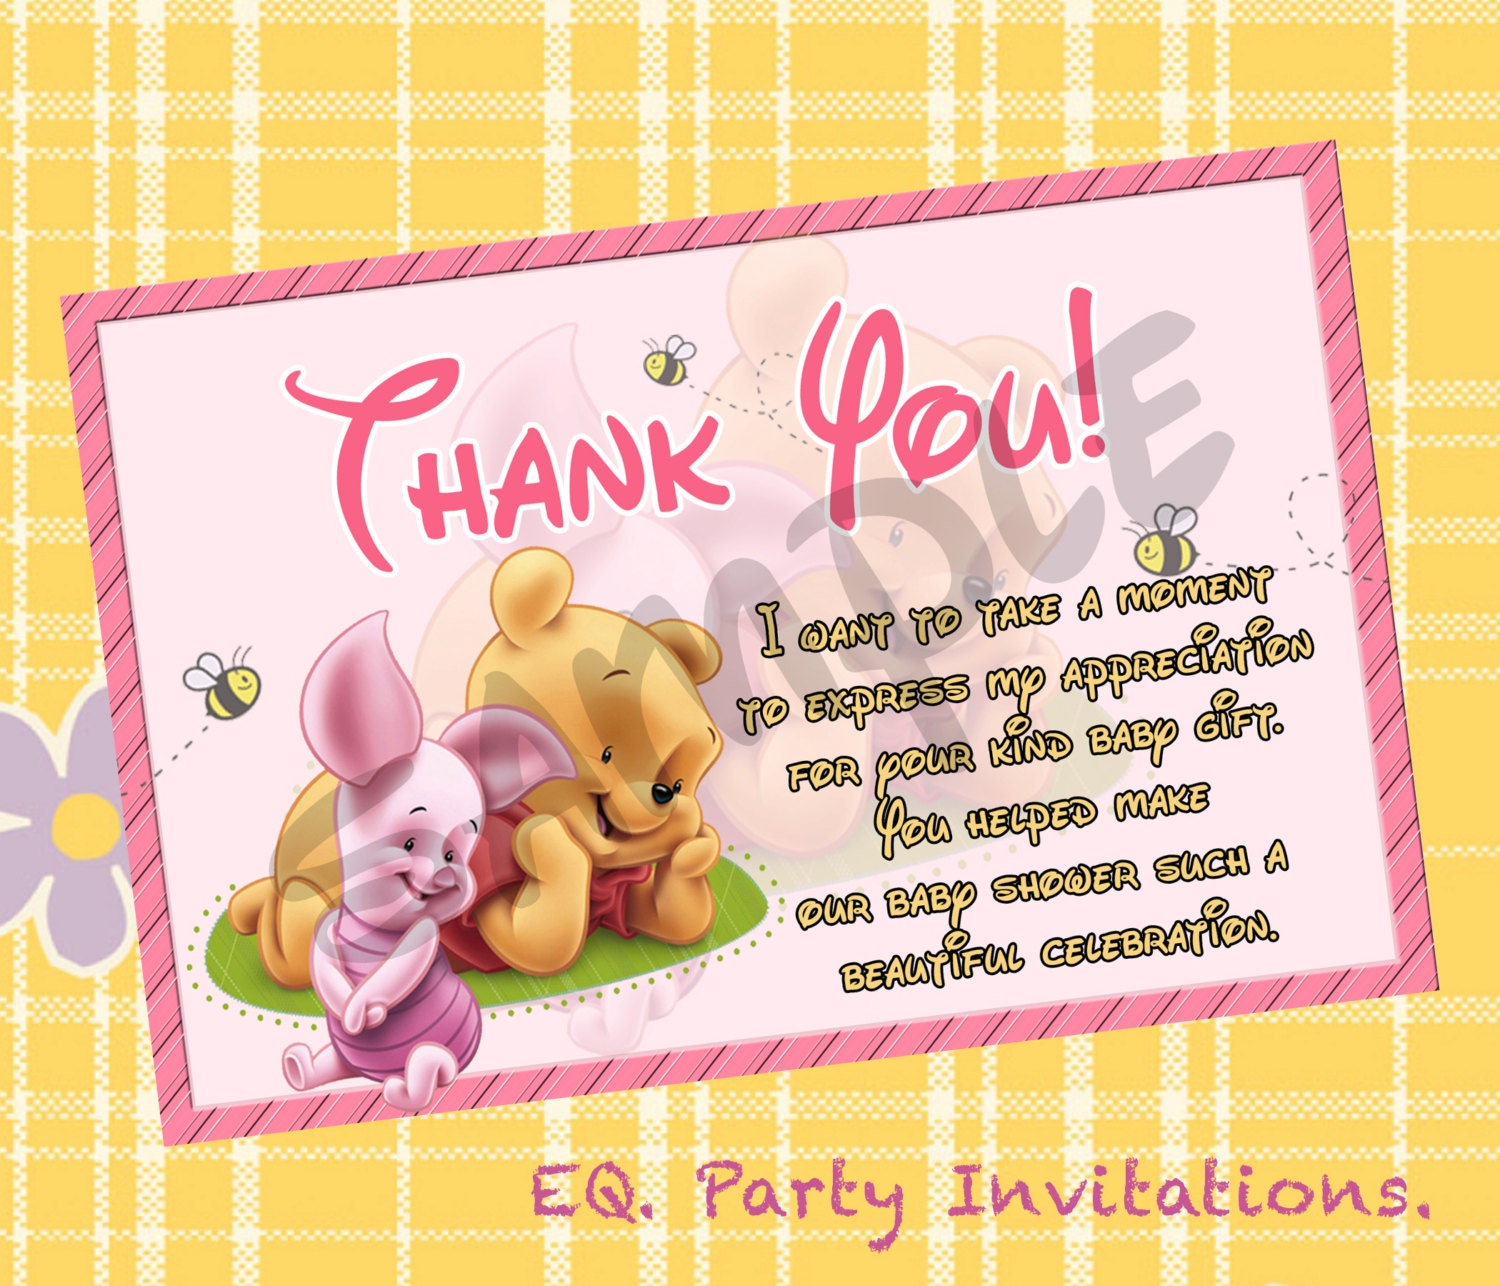 Winnie the pooh baby shower thank you card instant zoom kristyandbryce Image collections